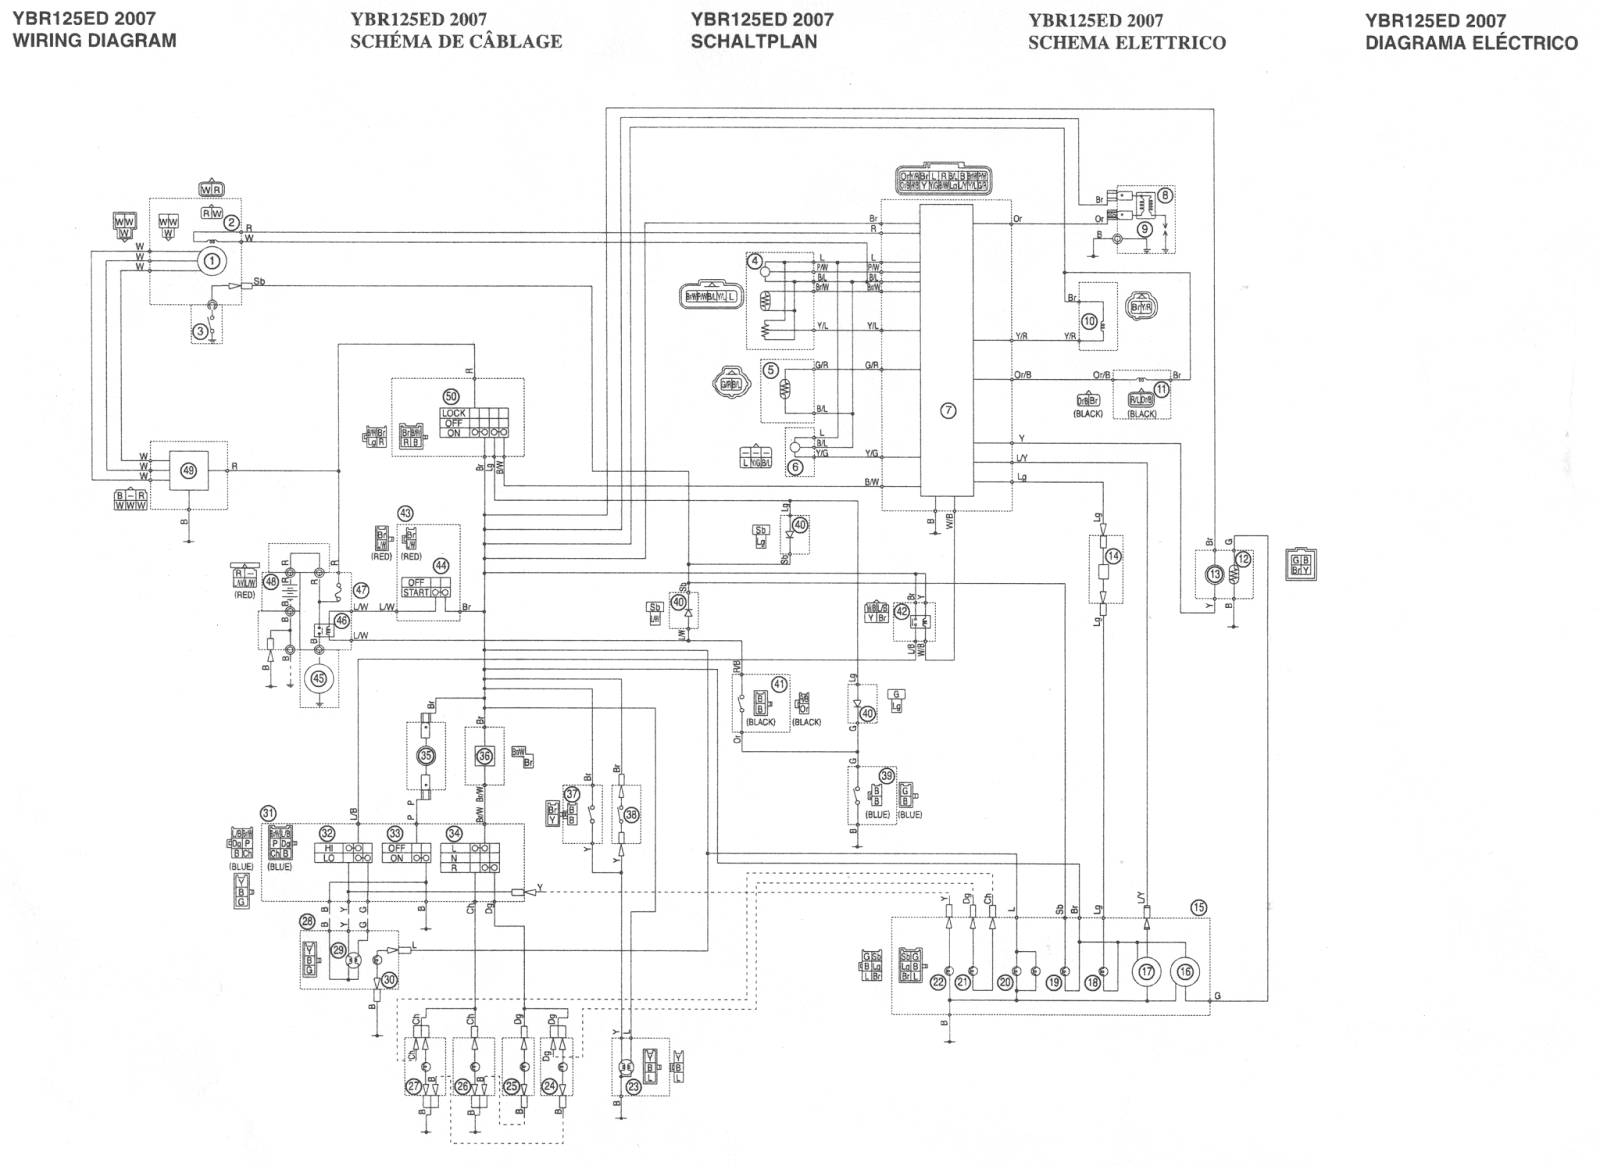 schema yamaha ybr 125 owner blog yamaha ybr 125 electrical system yamaha virago 250 wiring diagram at edmiracle.co